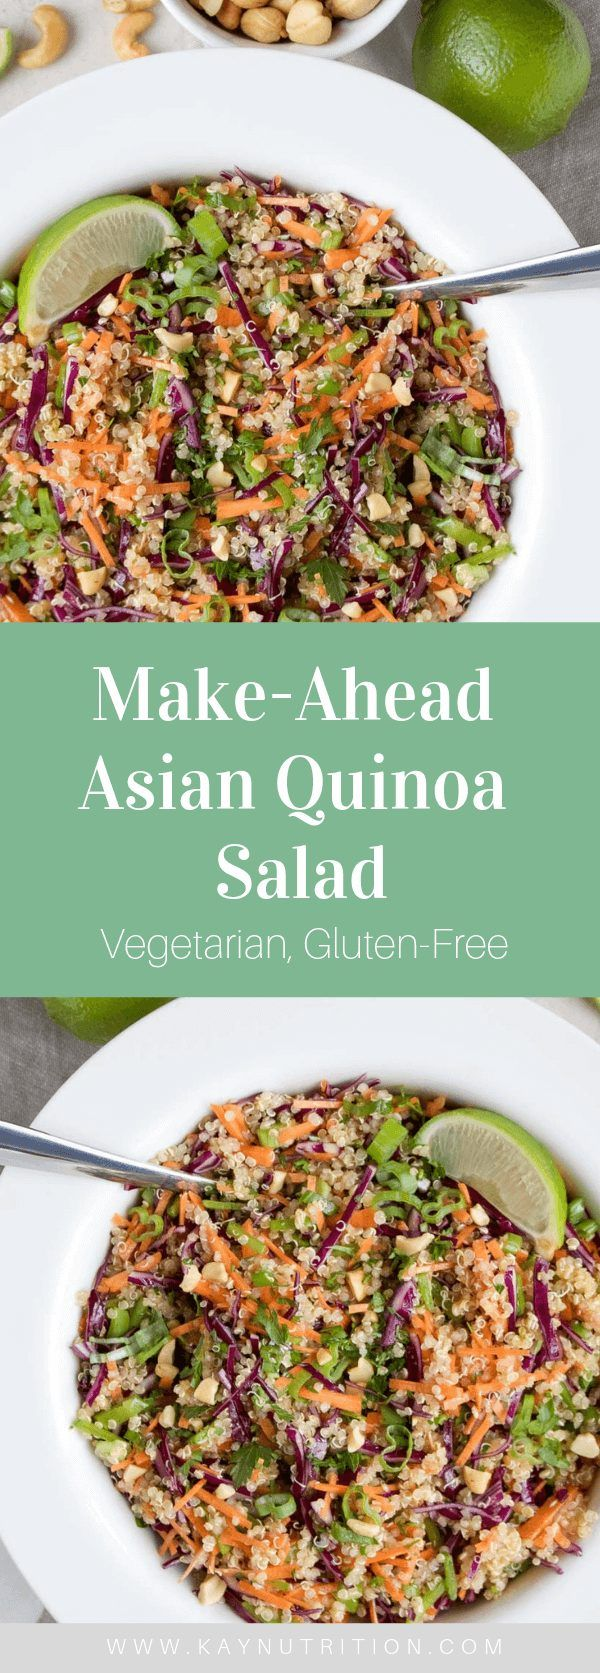 Make-Ahead Asian Quinoa Salad